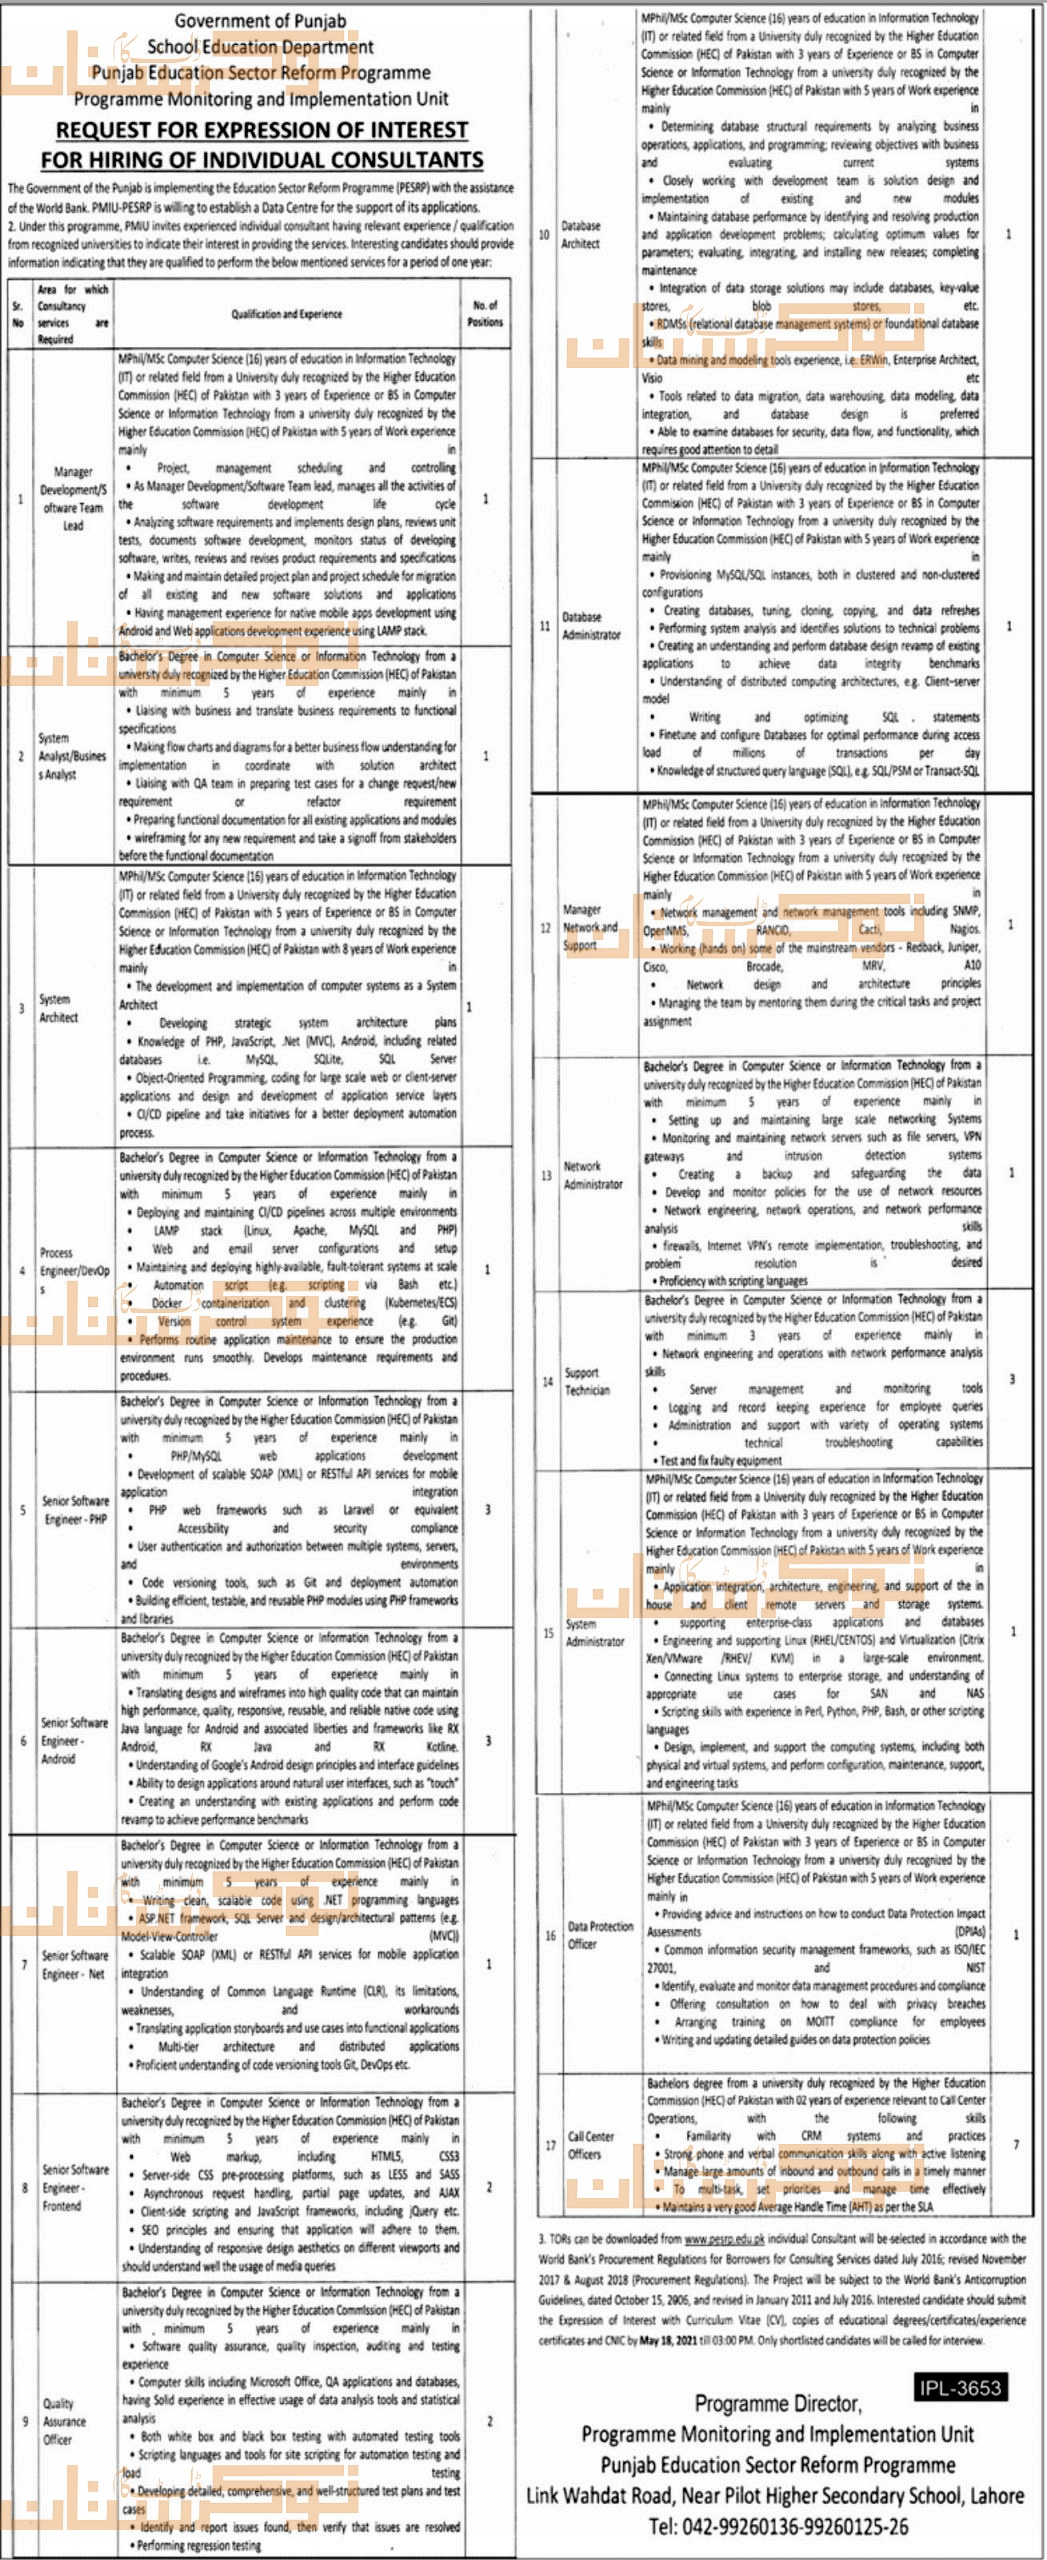 government,school education department government of the punjab,consultant,latest jobs,last date,requirements,application form,how to apply, jobs 2021,